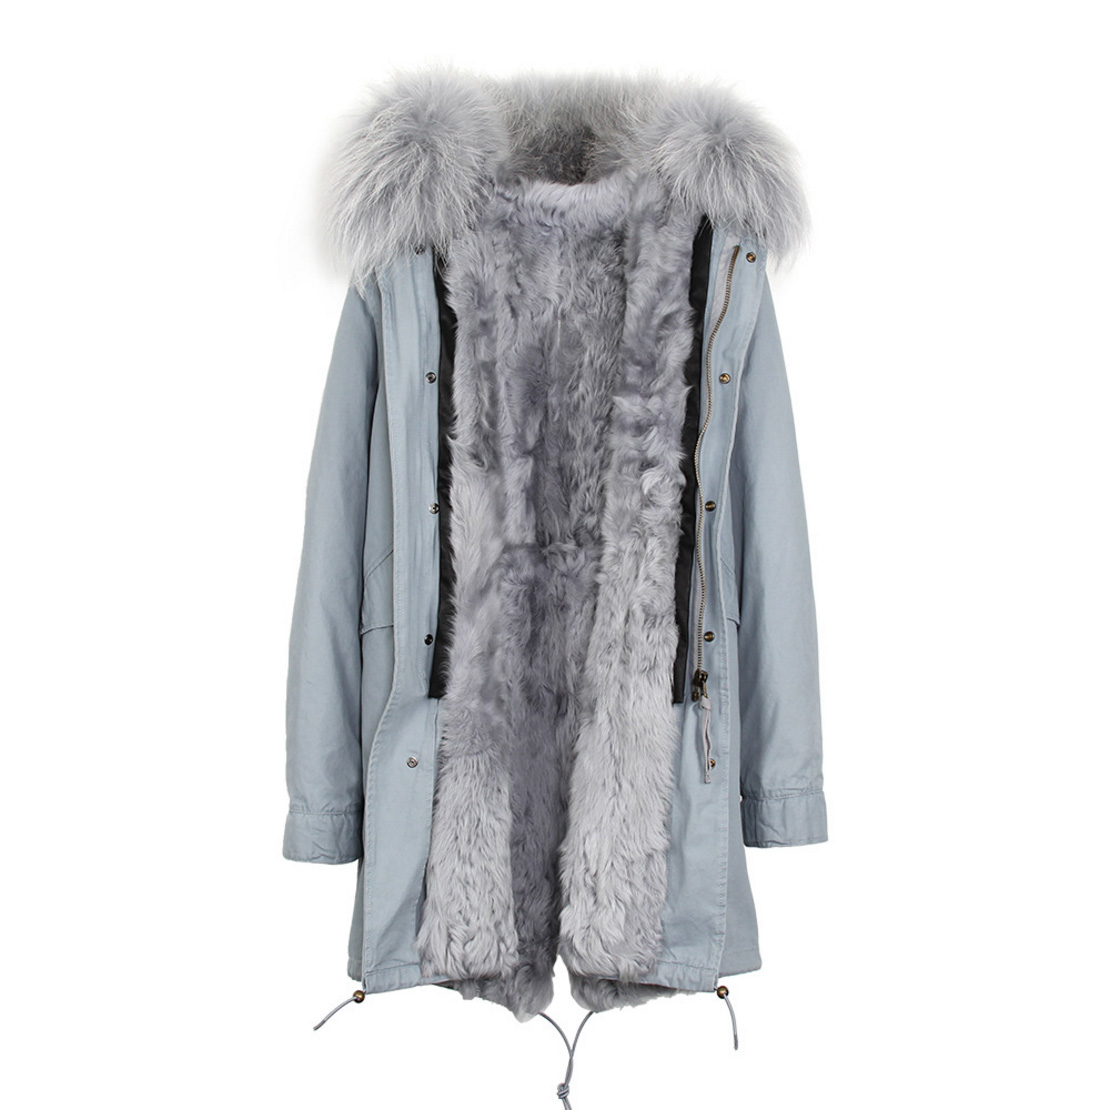 Raccoon Fur Trimmed Hooded Parka with Detachable Lamb Fur Liner 132-2